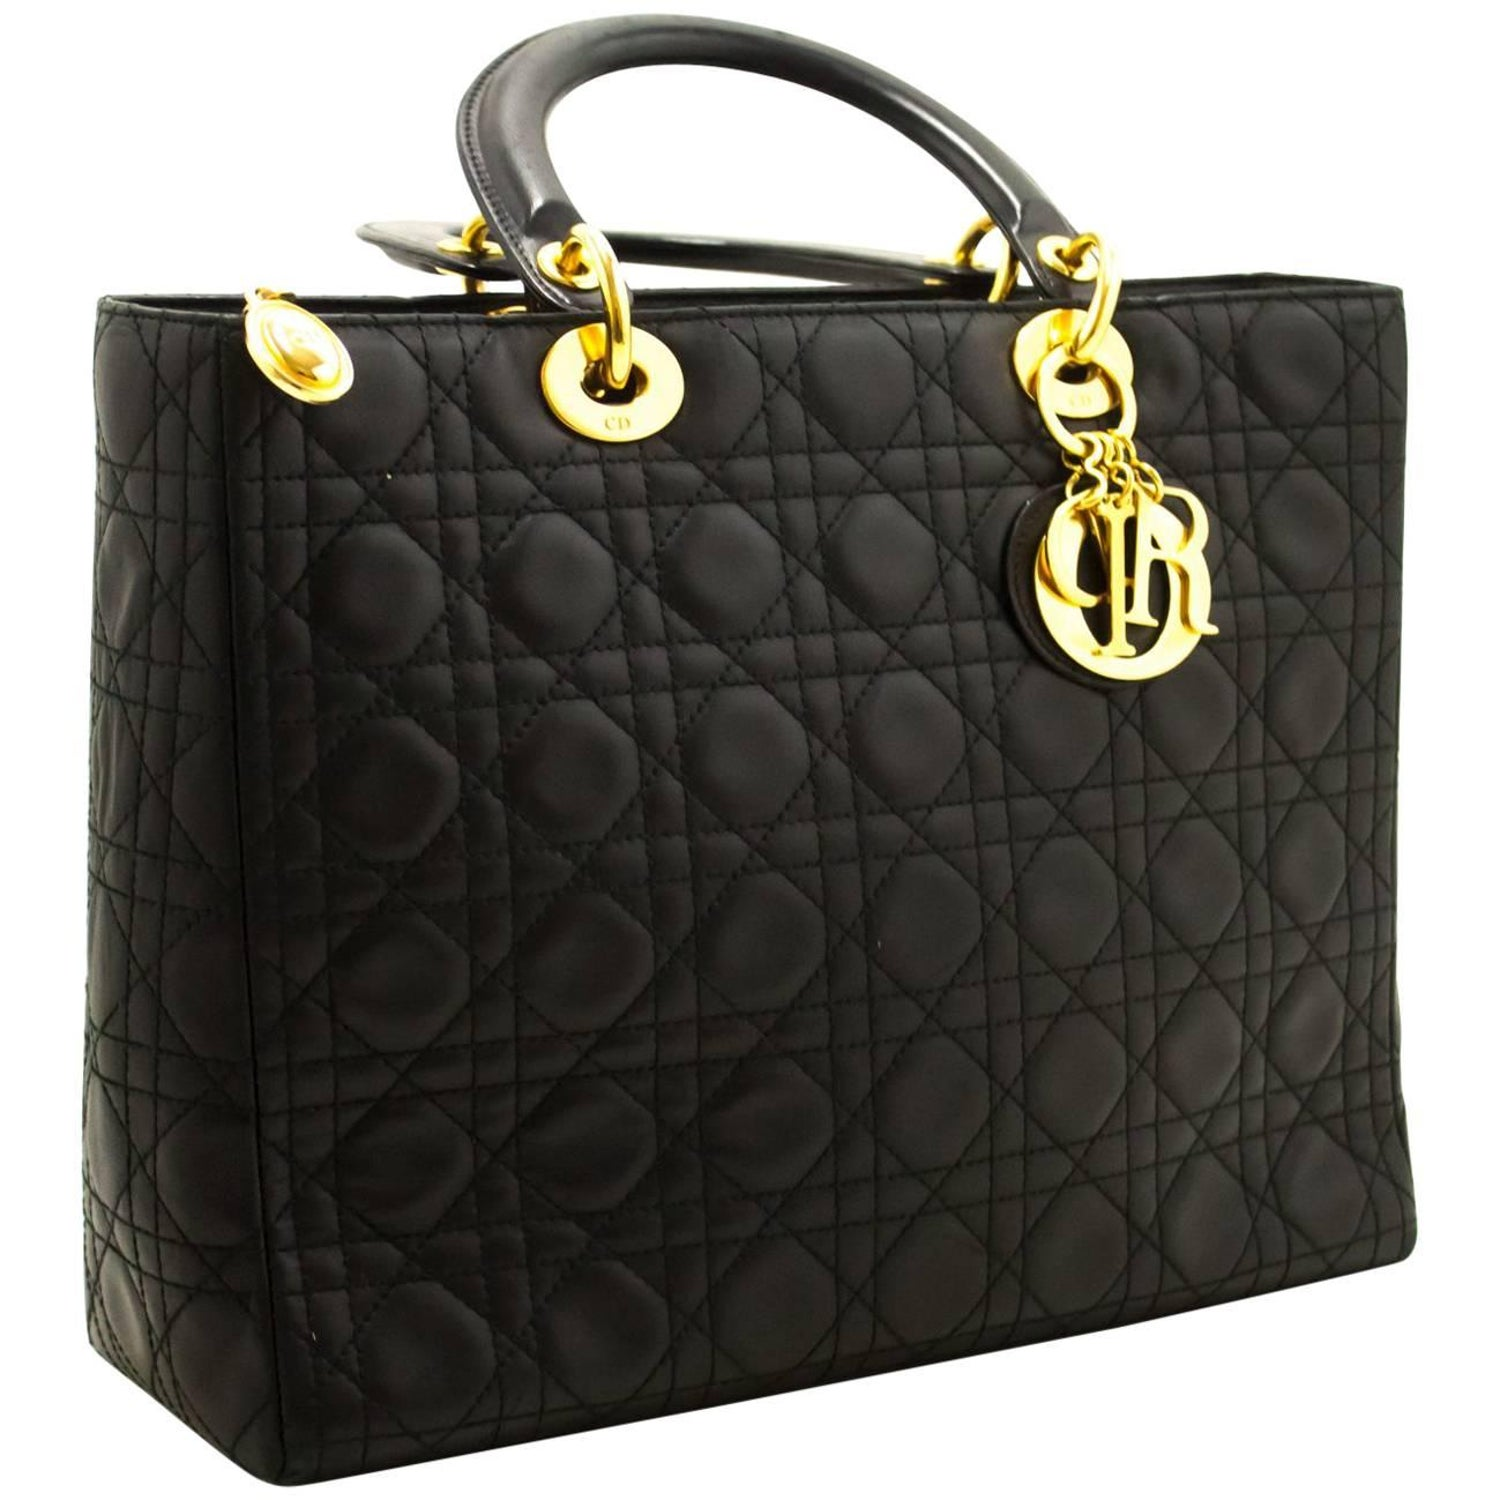 e90e4dcbe85 Christian Dior Lady Dior Large Handbag Black Lambskin Quilted Gold For Sale  at 1stdibs